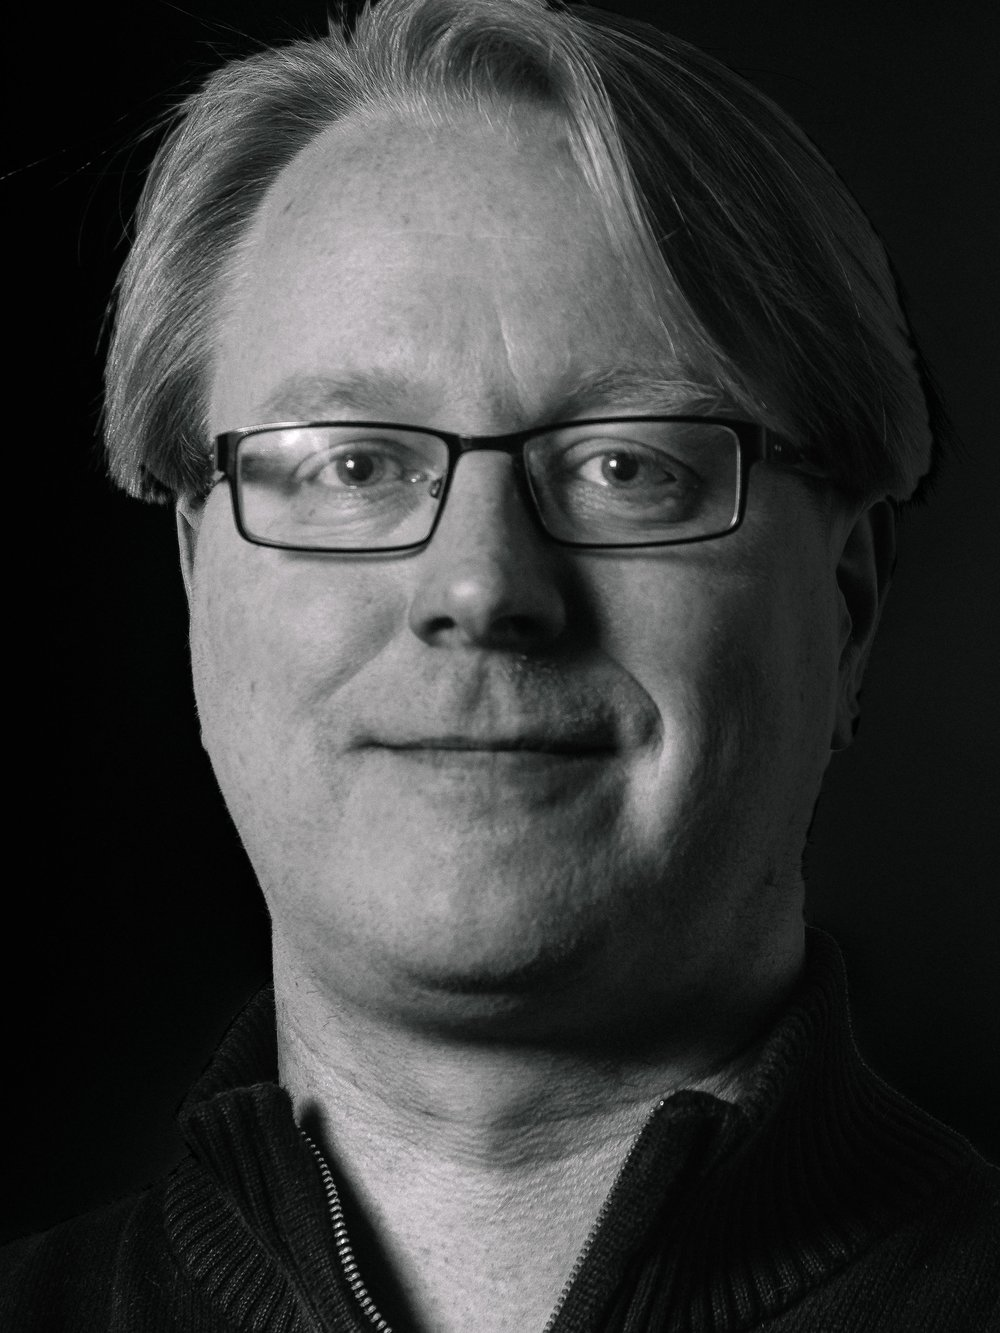 Mikko Ollila Camera and imaging lead. Pioneer in mobile imaging and camera development lead. Previously Camera Project Lead at Intel, Senior Specialist at Nokia. Inventor in 40+ patents. M.Sc in Microelectronics.